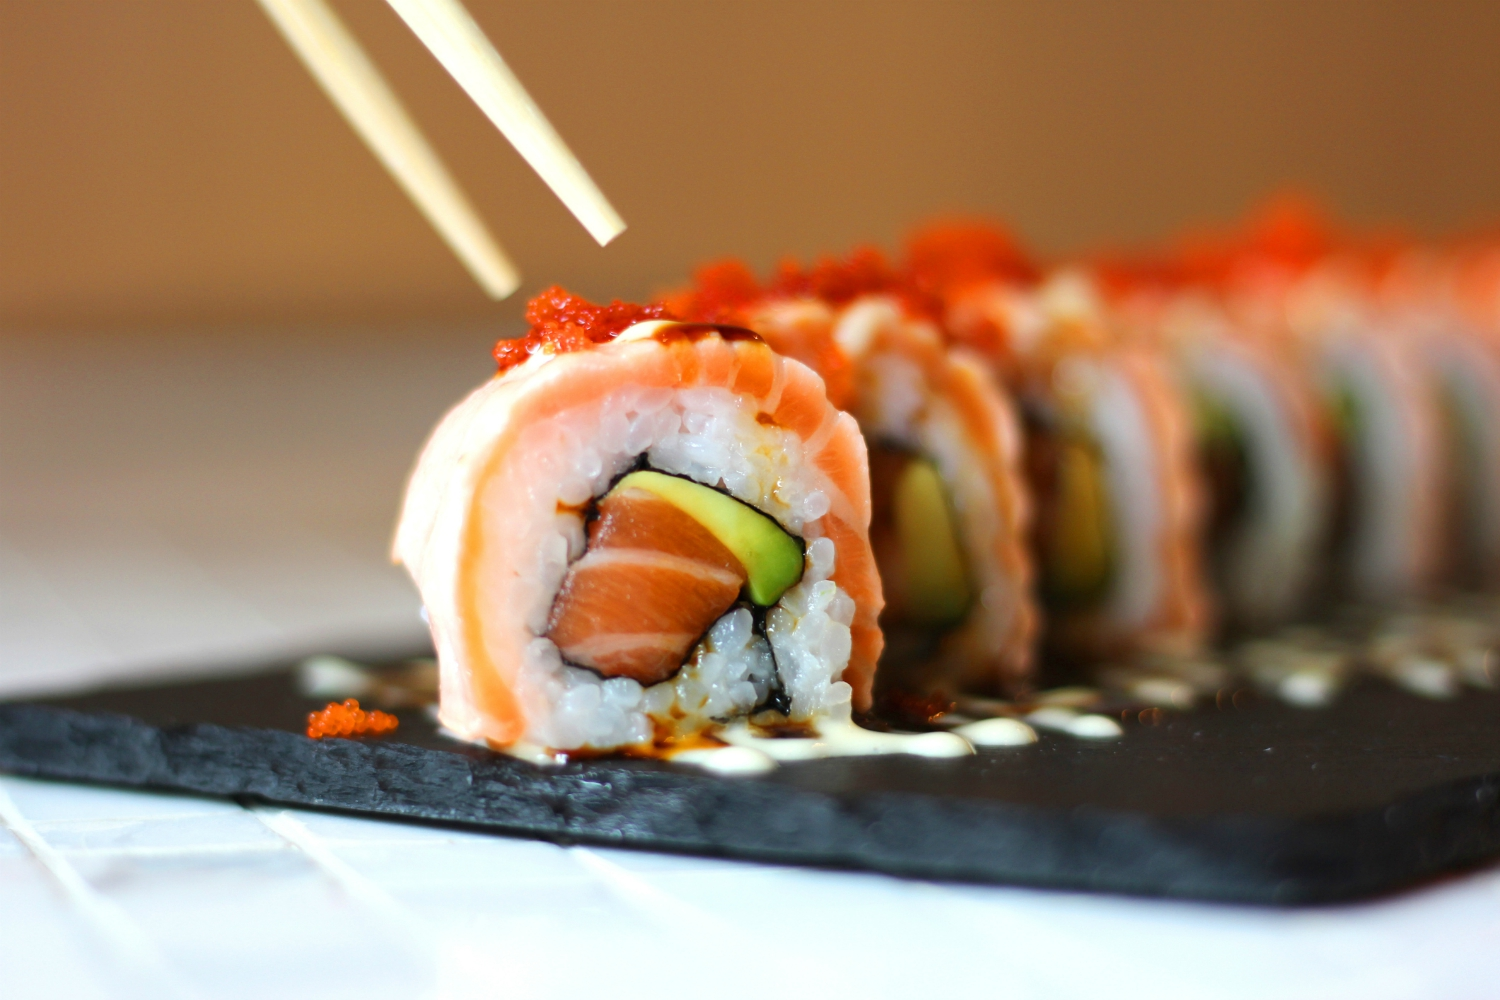 The 7 Best All You Can Eat Sushi Places In The L A Area Right Now